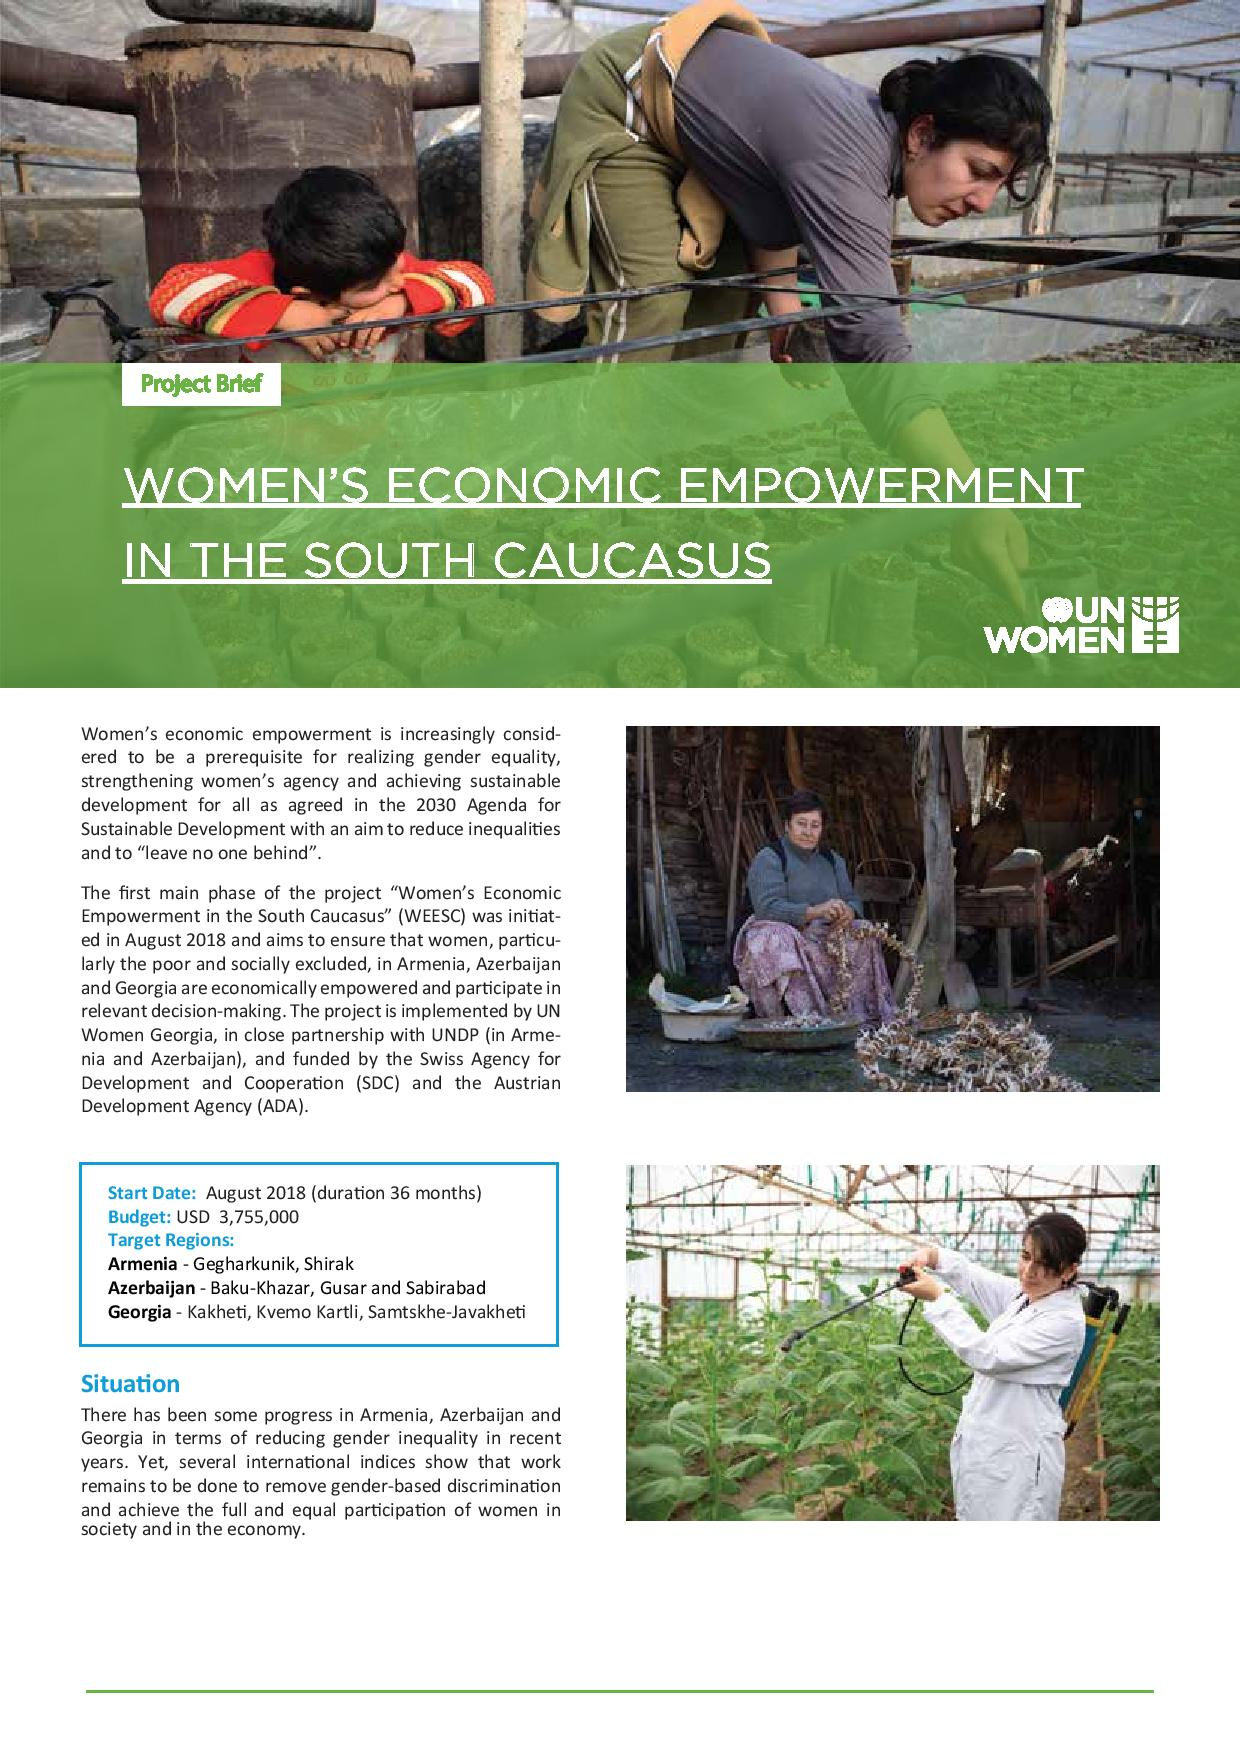 Women's Economic Empowerment in the South Caucasus